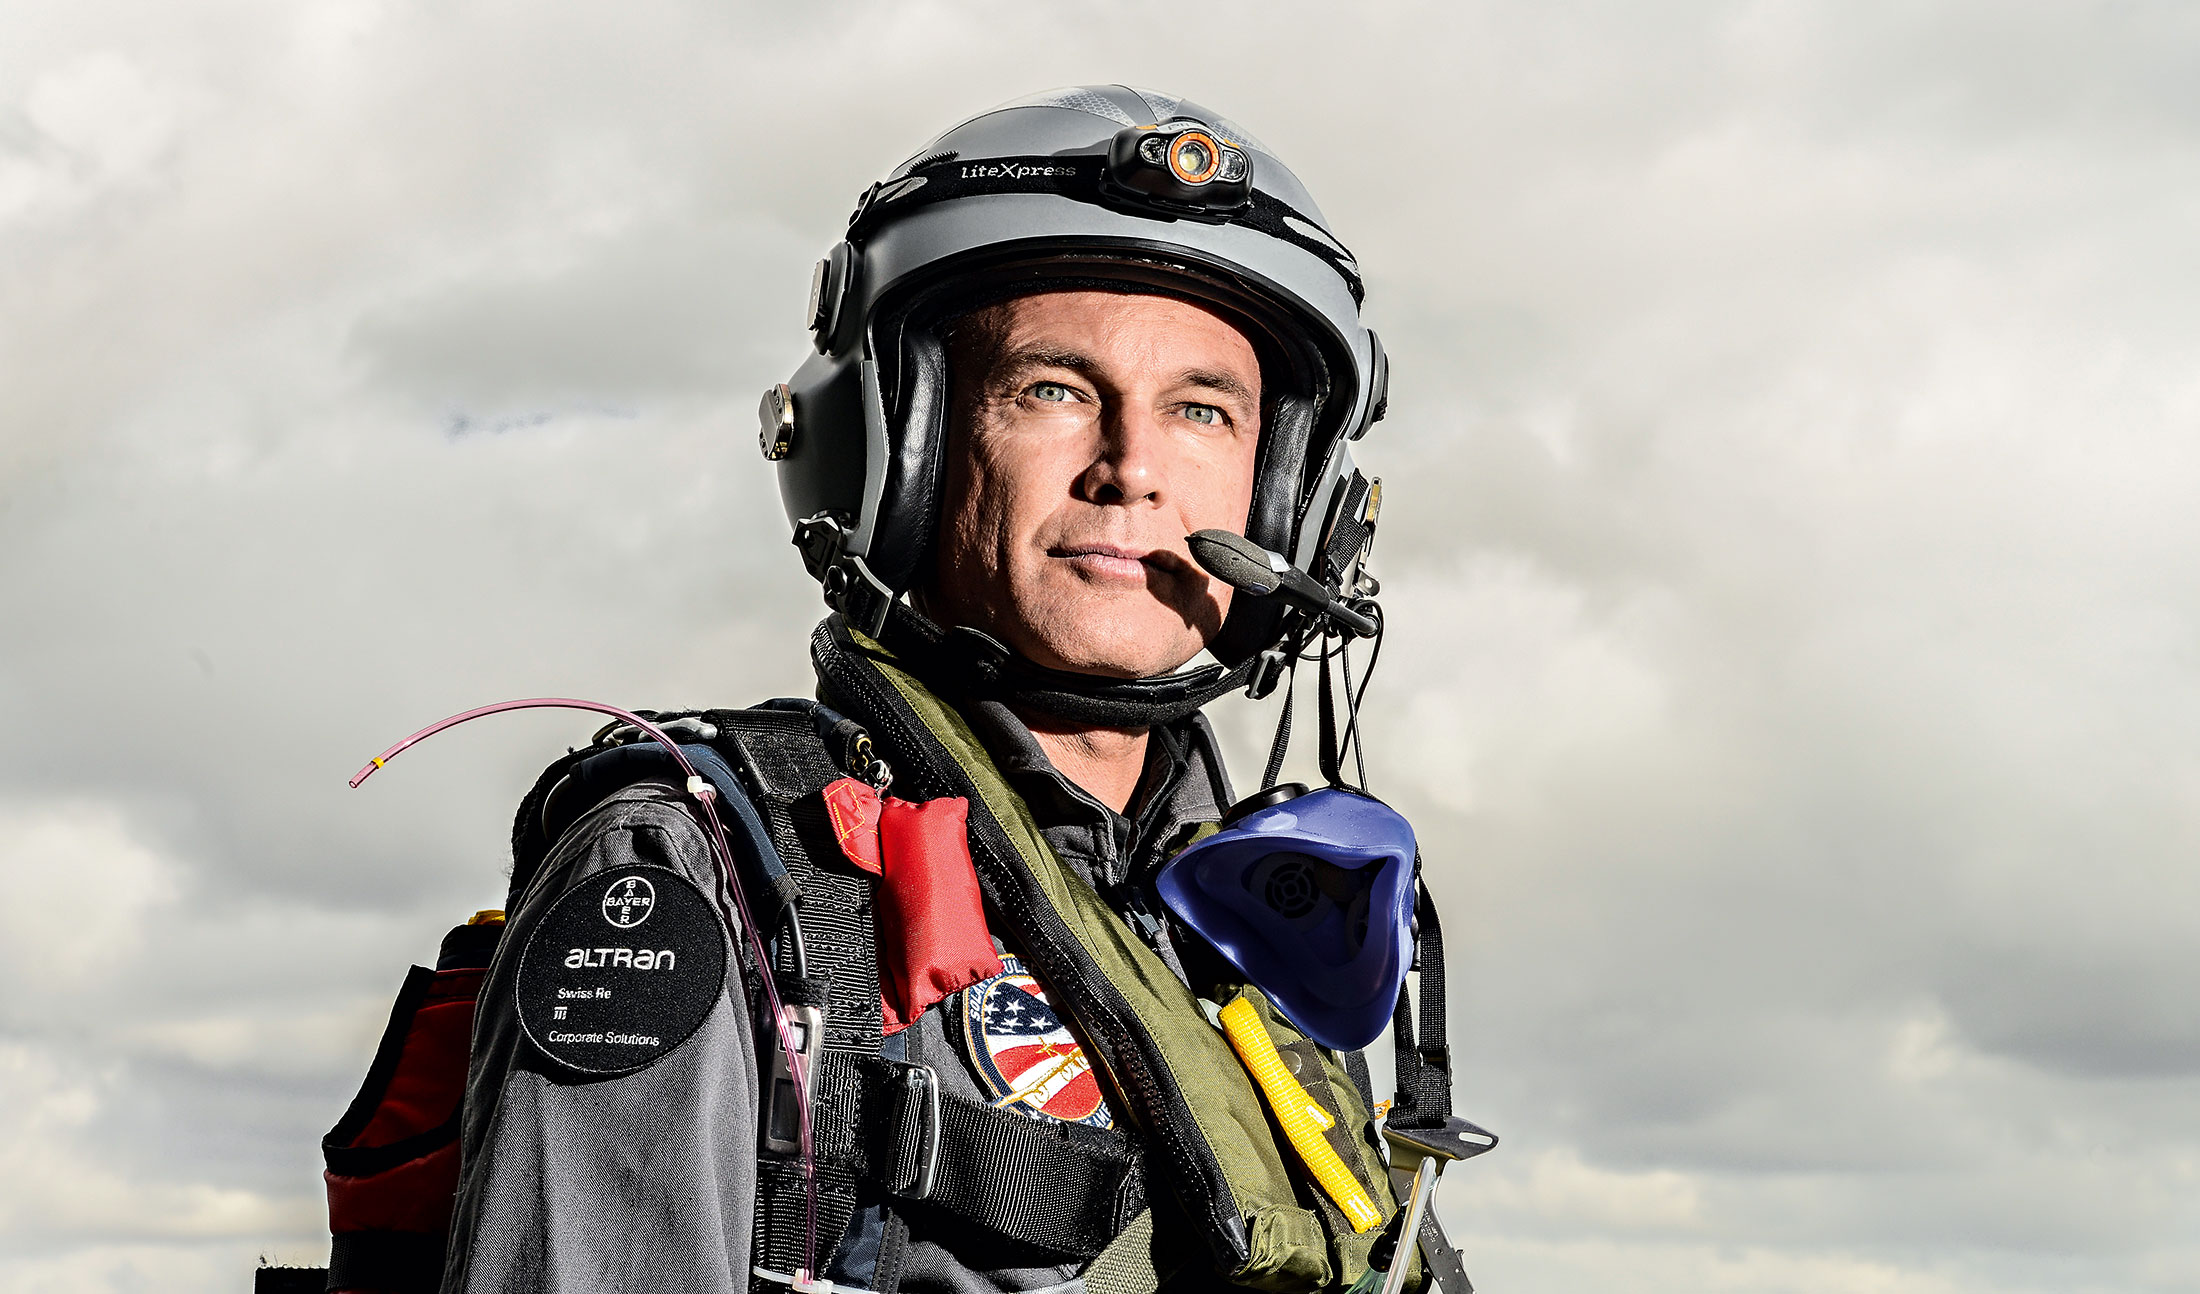 Bertrand Piccard has many strings to his bow, but the explorer, lecturer and philanthropist is best known for pioneering and piloting the first attempt at an around-the-world solar-powered flight